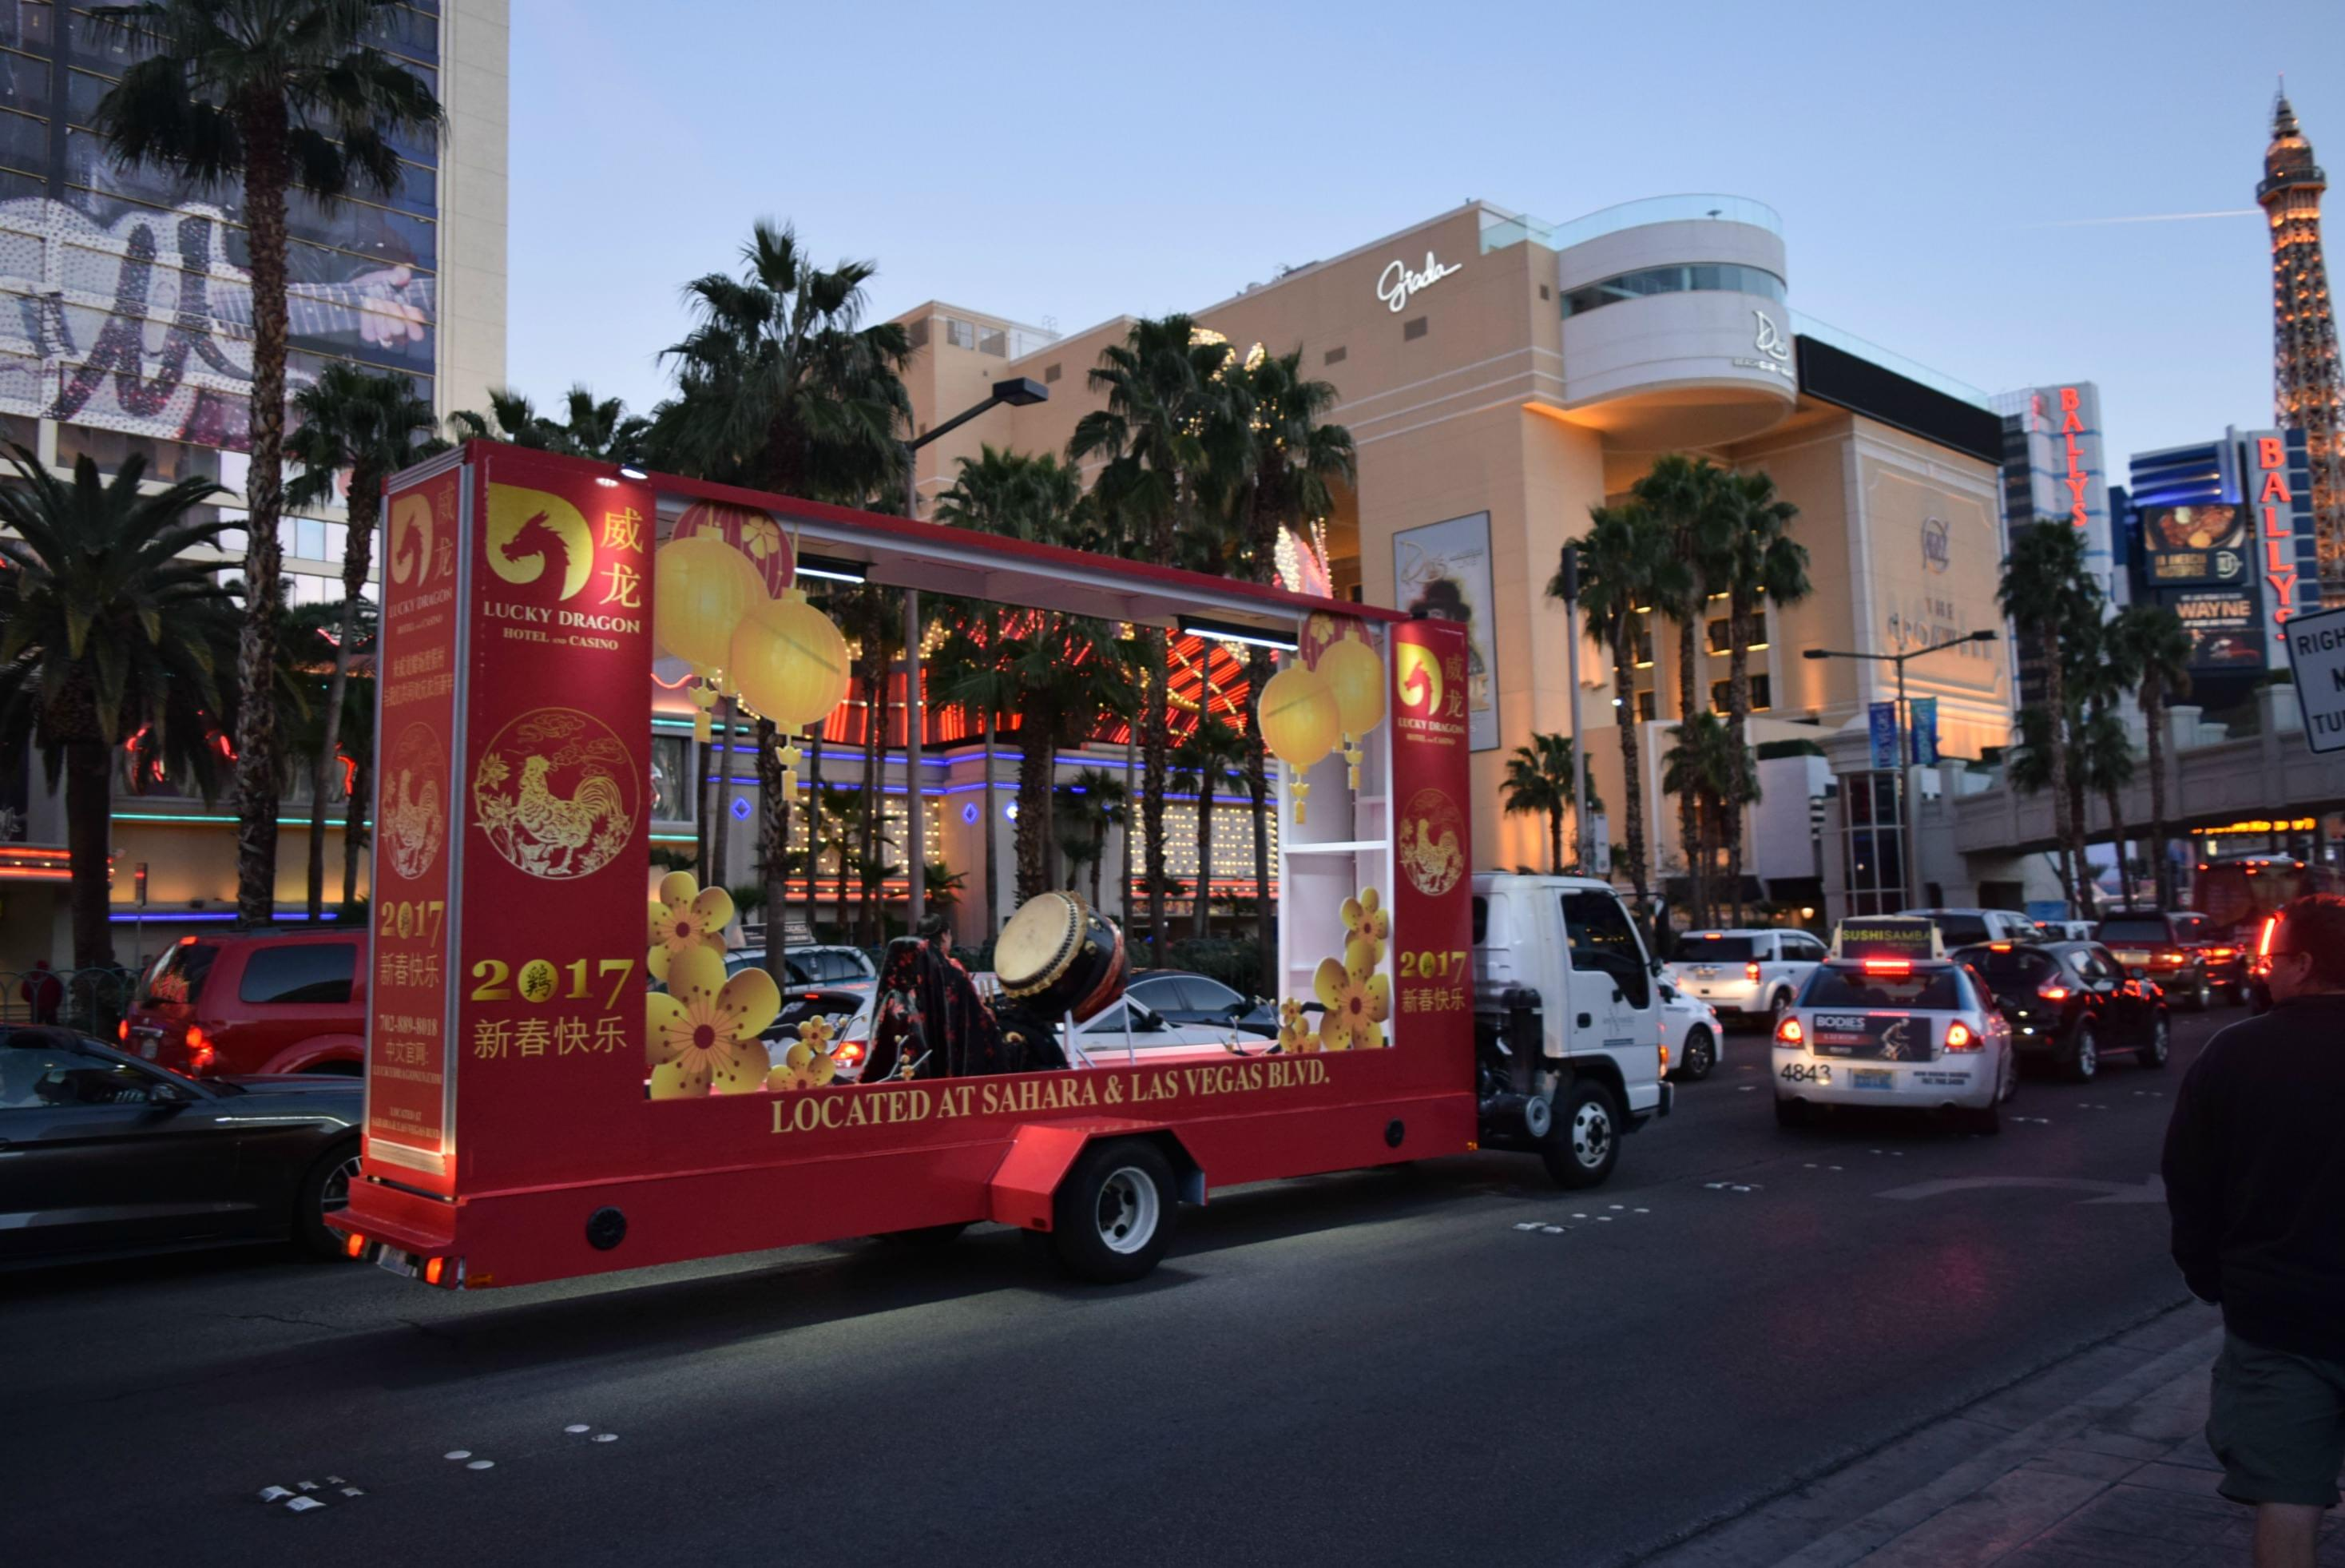 Constant messaging from mobile billboards leads to high retention among consumers